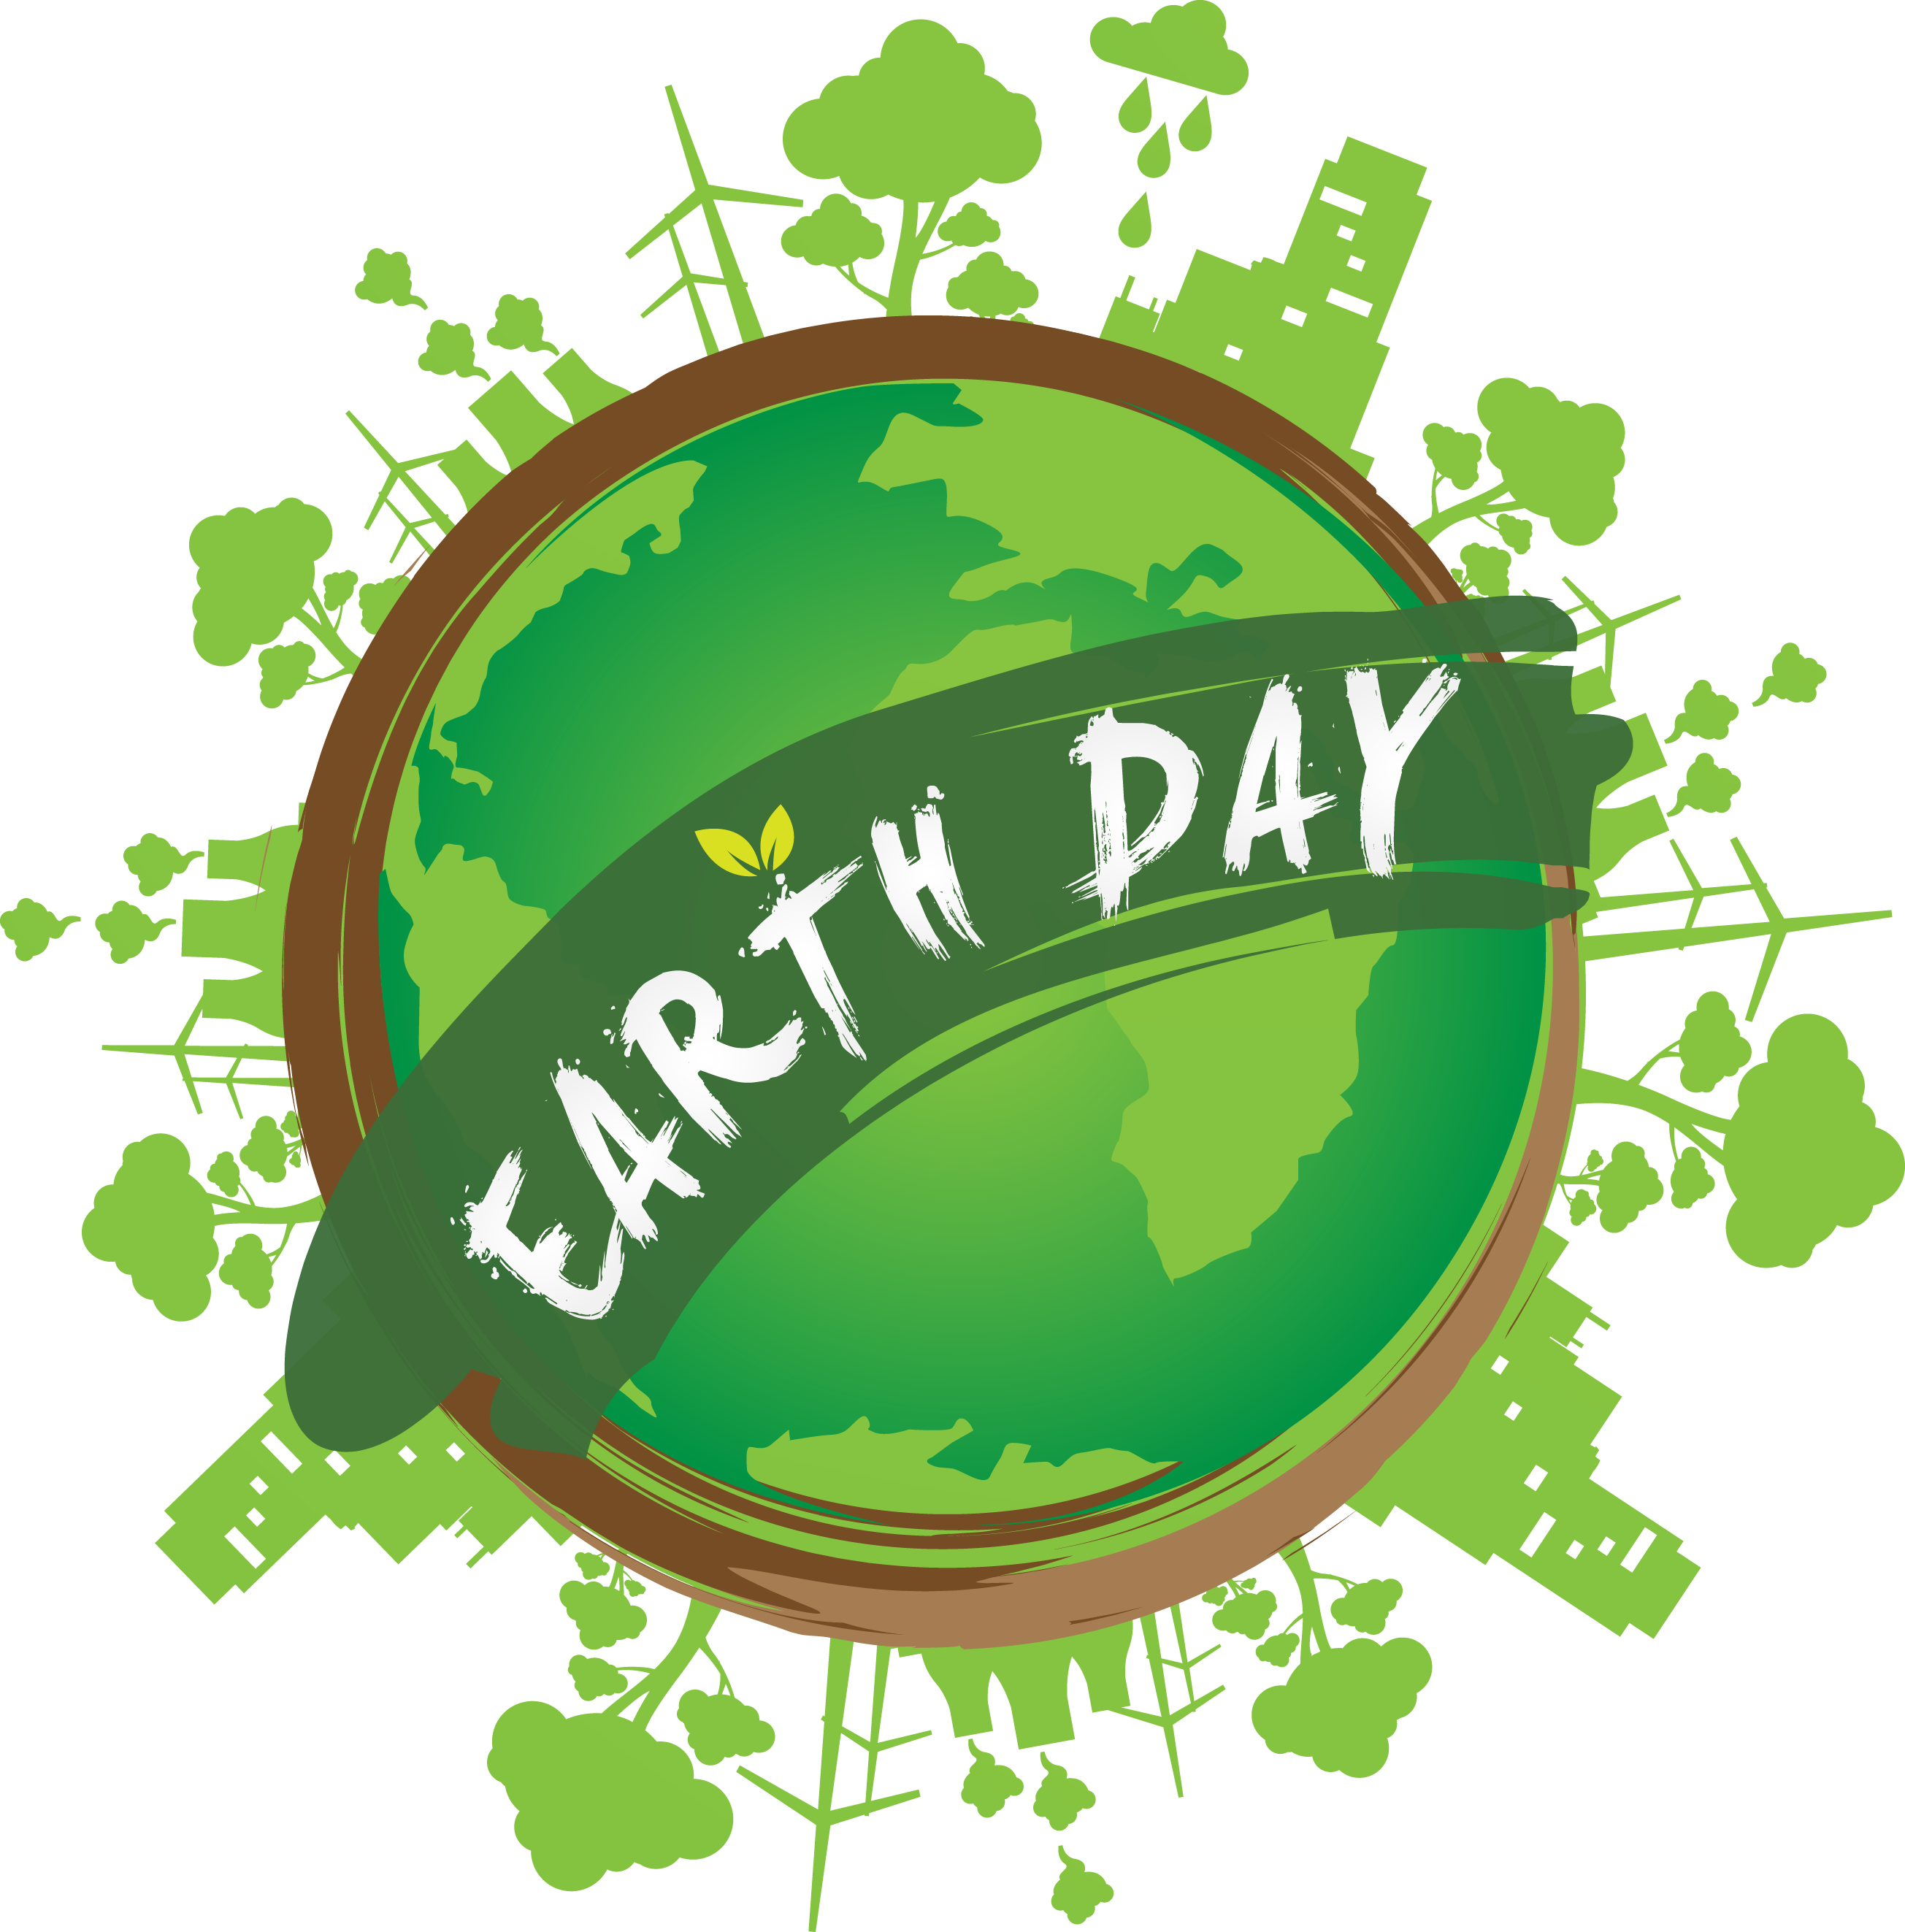 Day save nature green. Clipart earth happy